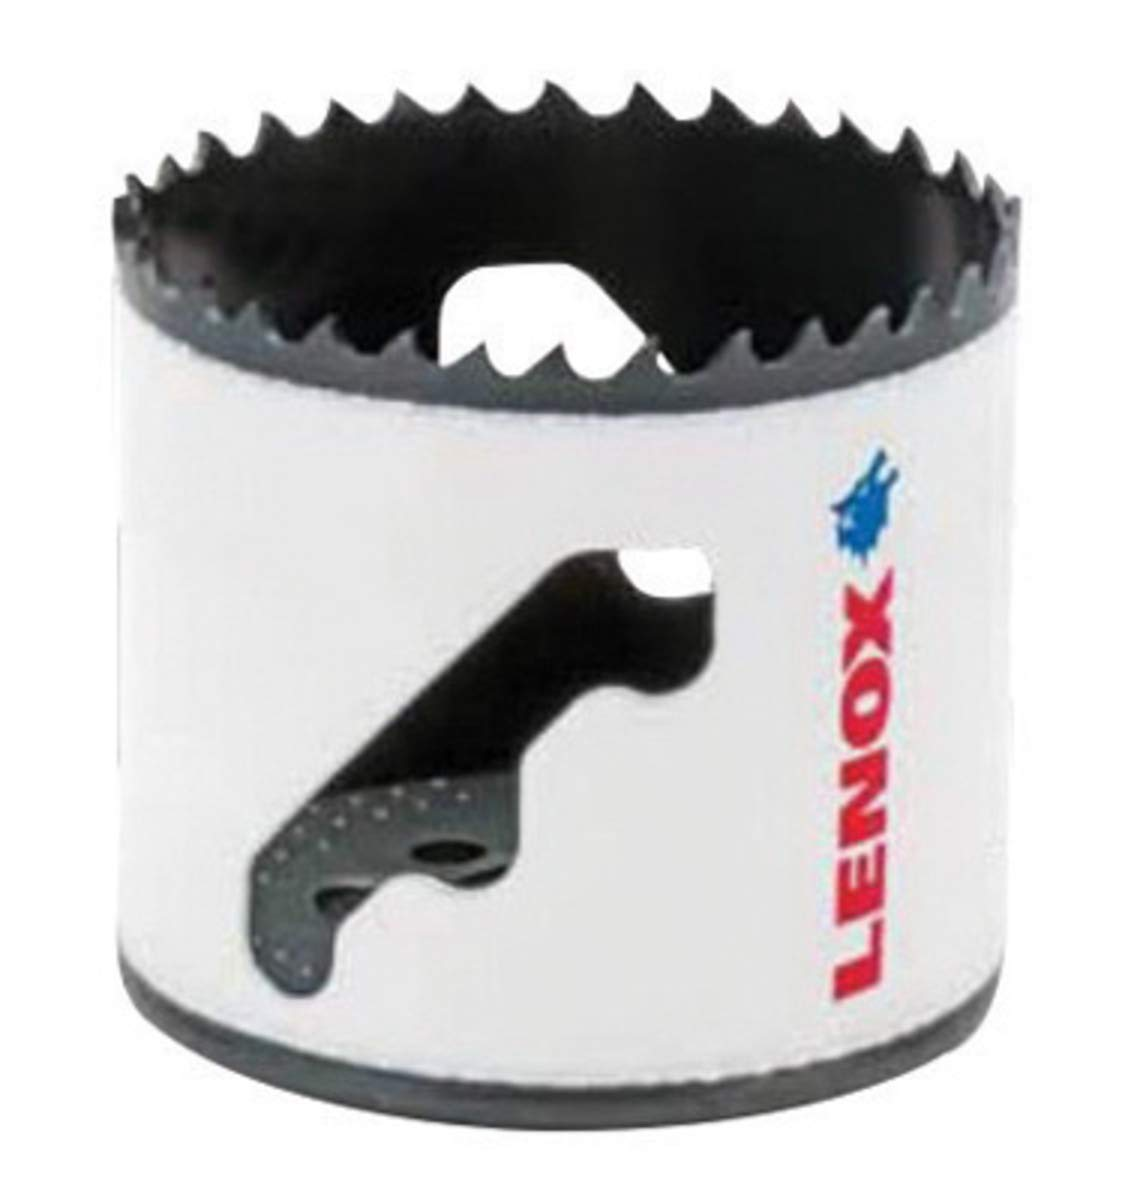 """1 9/16"""" Lenox Speed Slot Bi-Metal Hole Saw With 4/5 Variable Pitch Teeth Per Inch For Use With 2L, 3L, 6L, 7L Standard And 2L, 6L Snap-Back Arbors (Boxed)"""